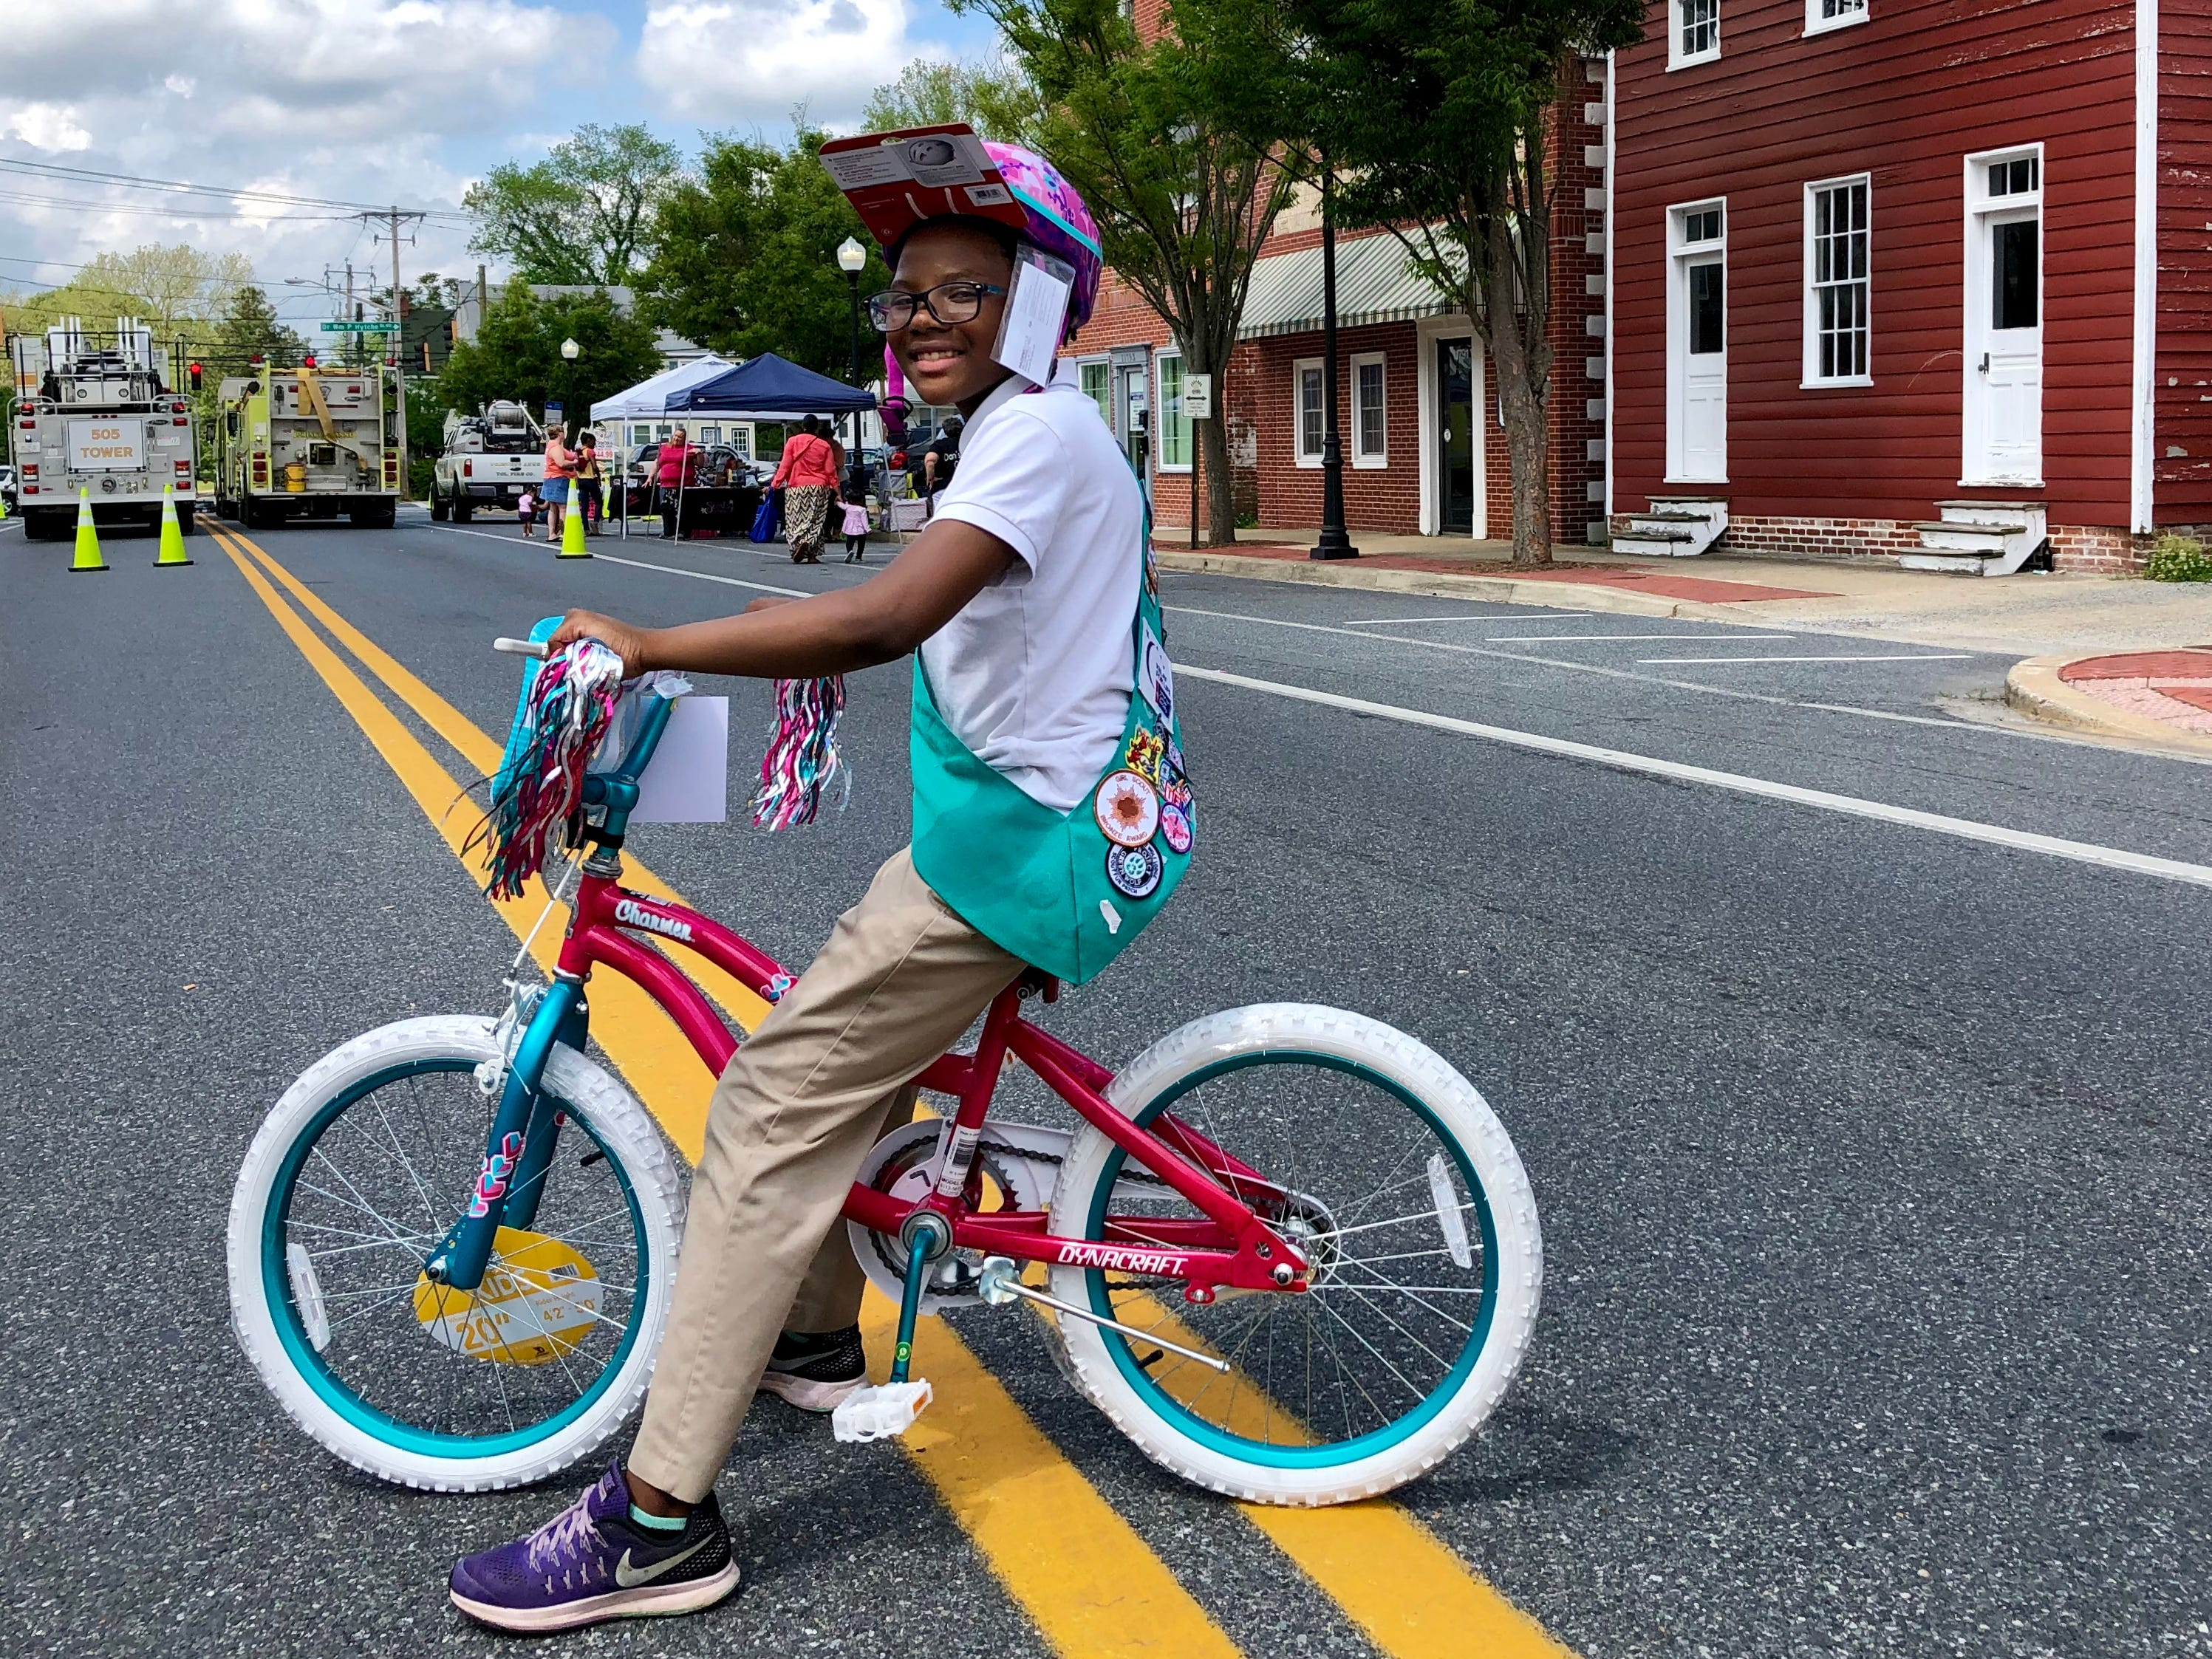 Amara Hankerson, 10, a student at Greenwood Elementary and a member of Girl Scout Troop 1285, won one of four bicycles given away at Street Fest. The bicycles, given away by the Princess Anne Chamber of Commerce, were sponsored by Farmers Bank of Willards.